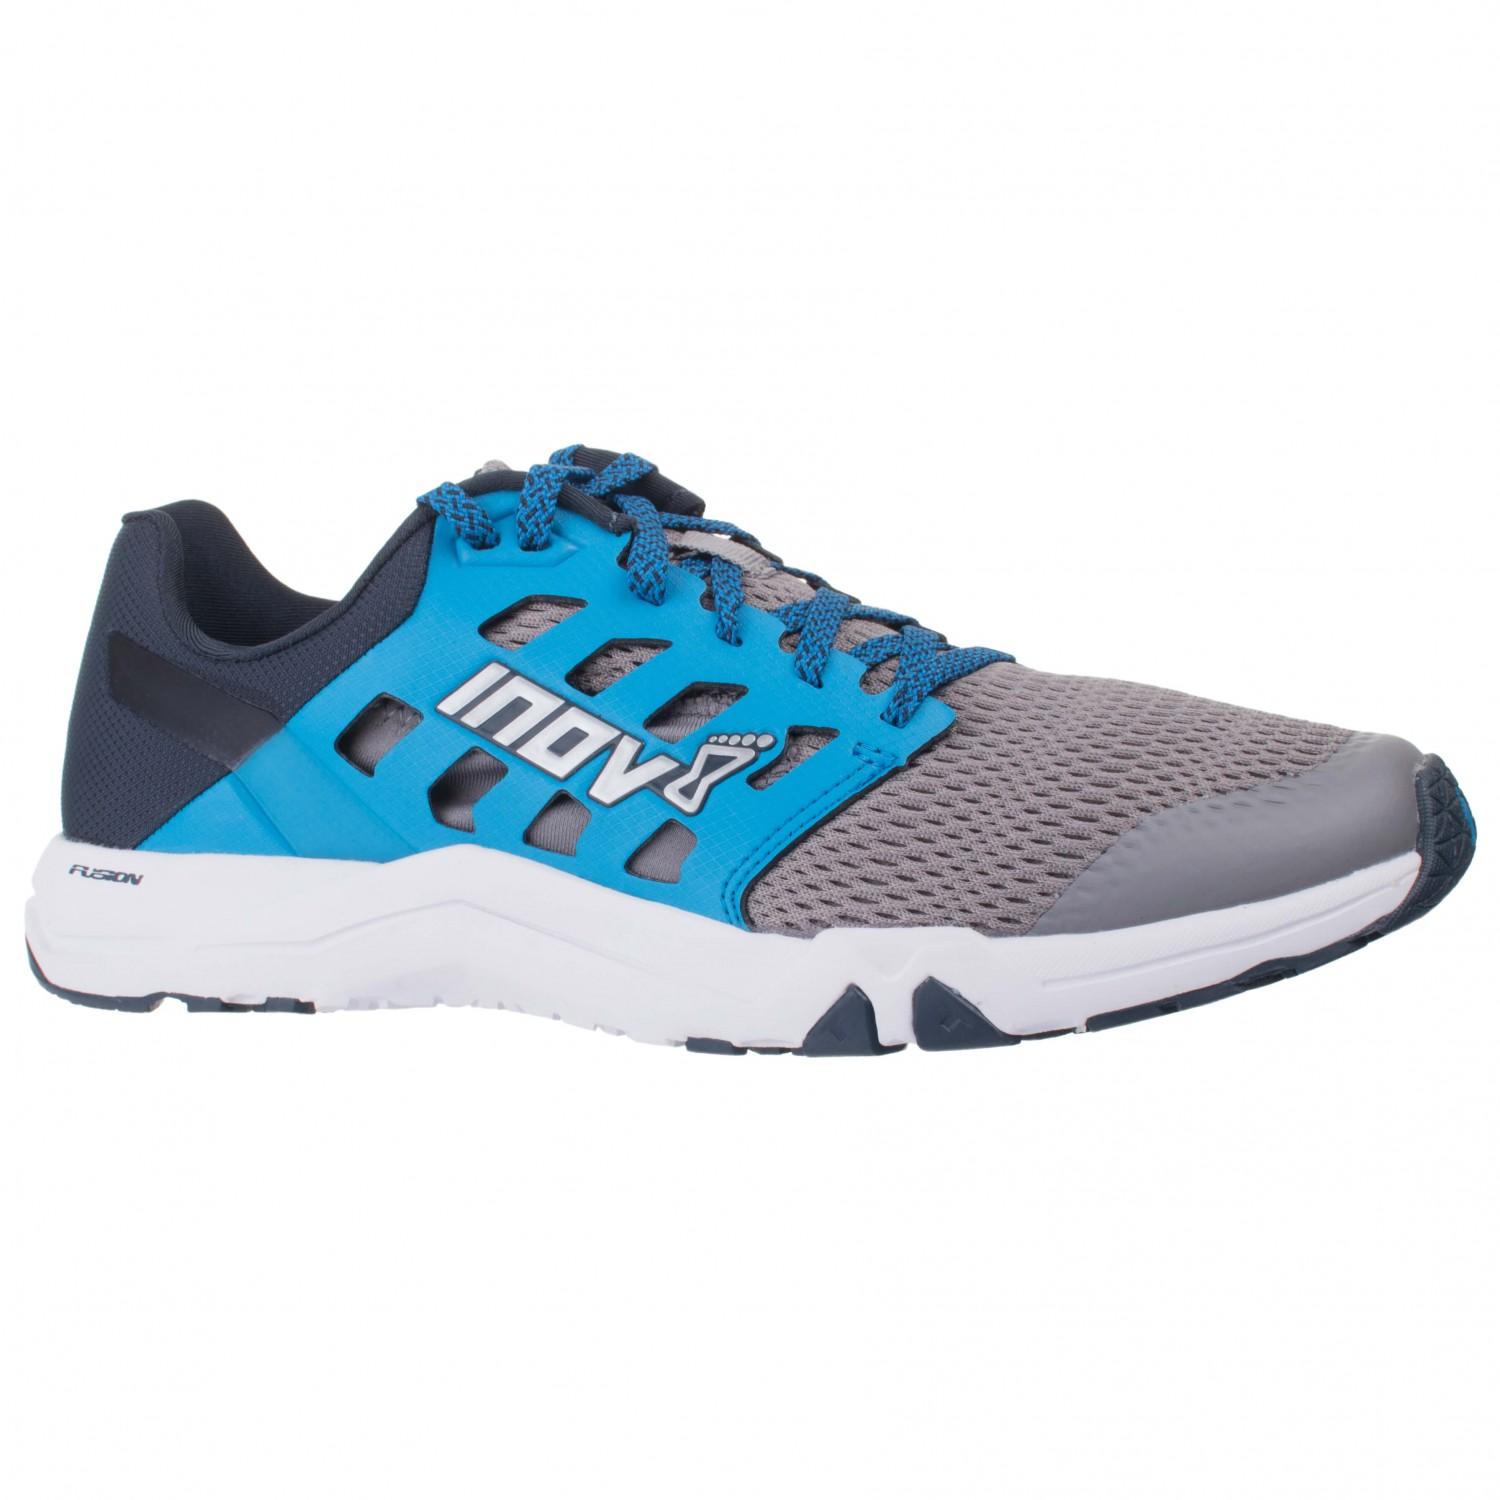 Inov-8 - All Train 215 - Fitnessschuh Grey / Blue / Navy